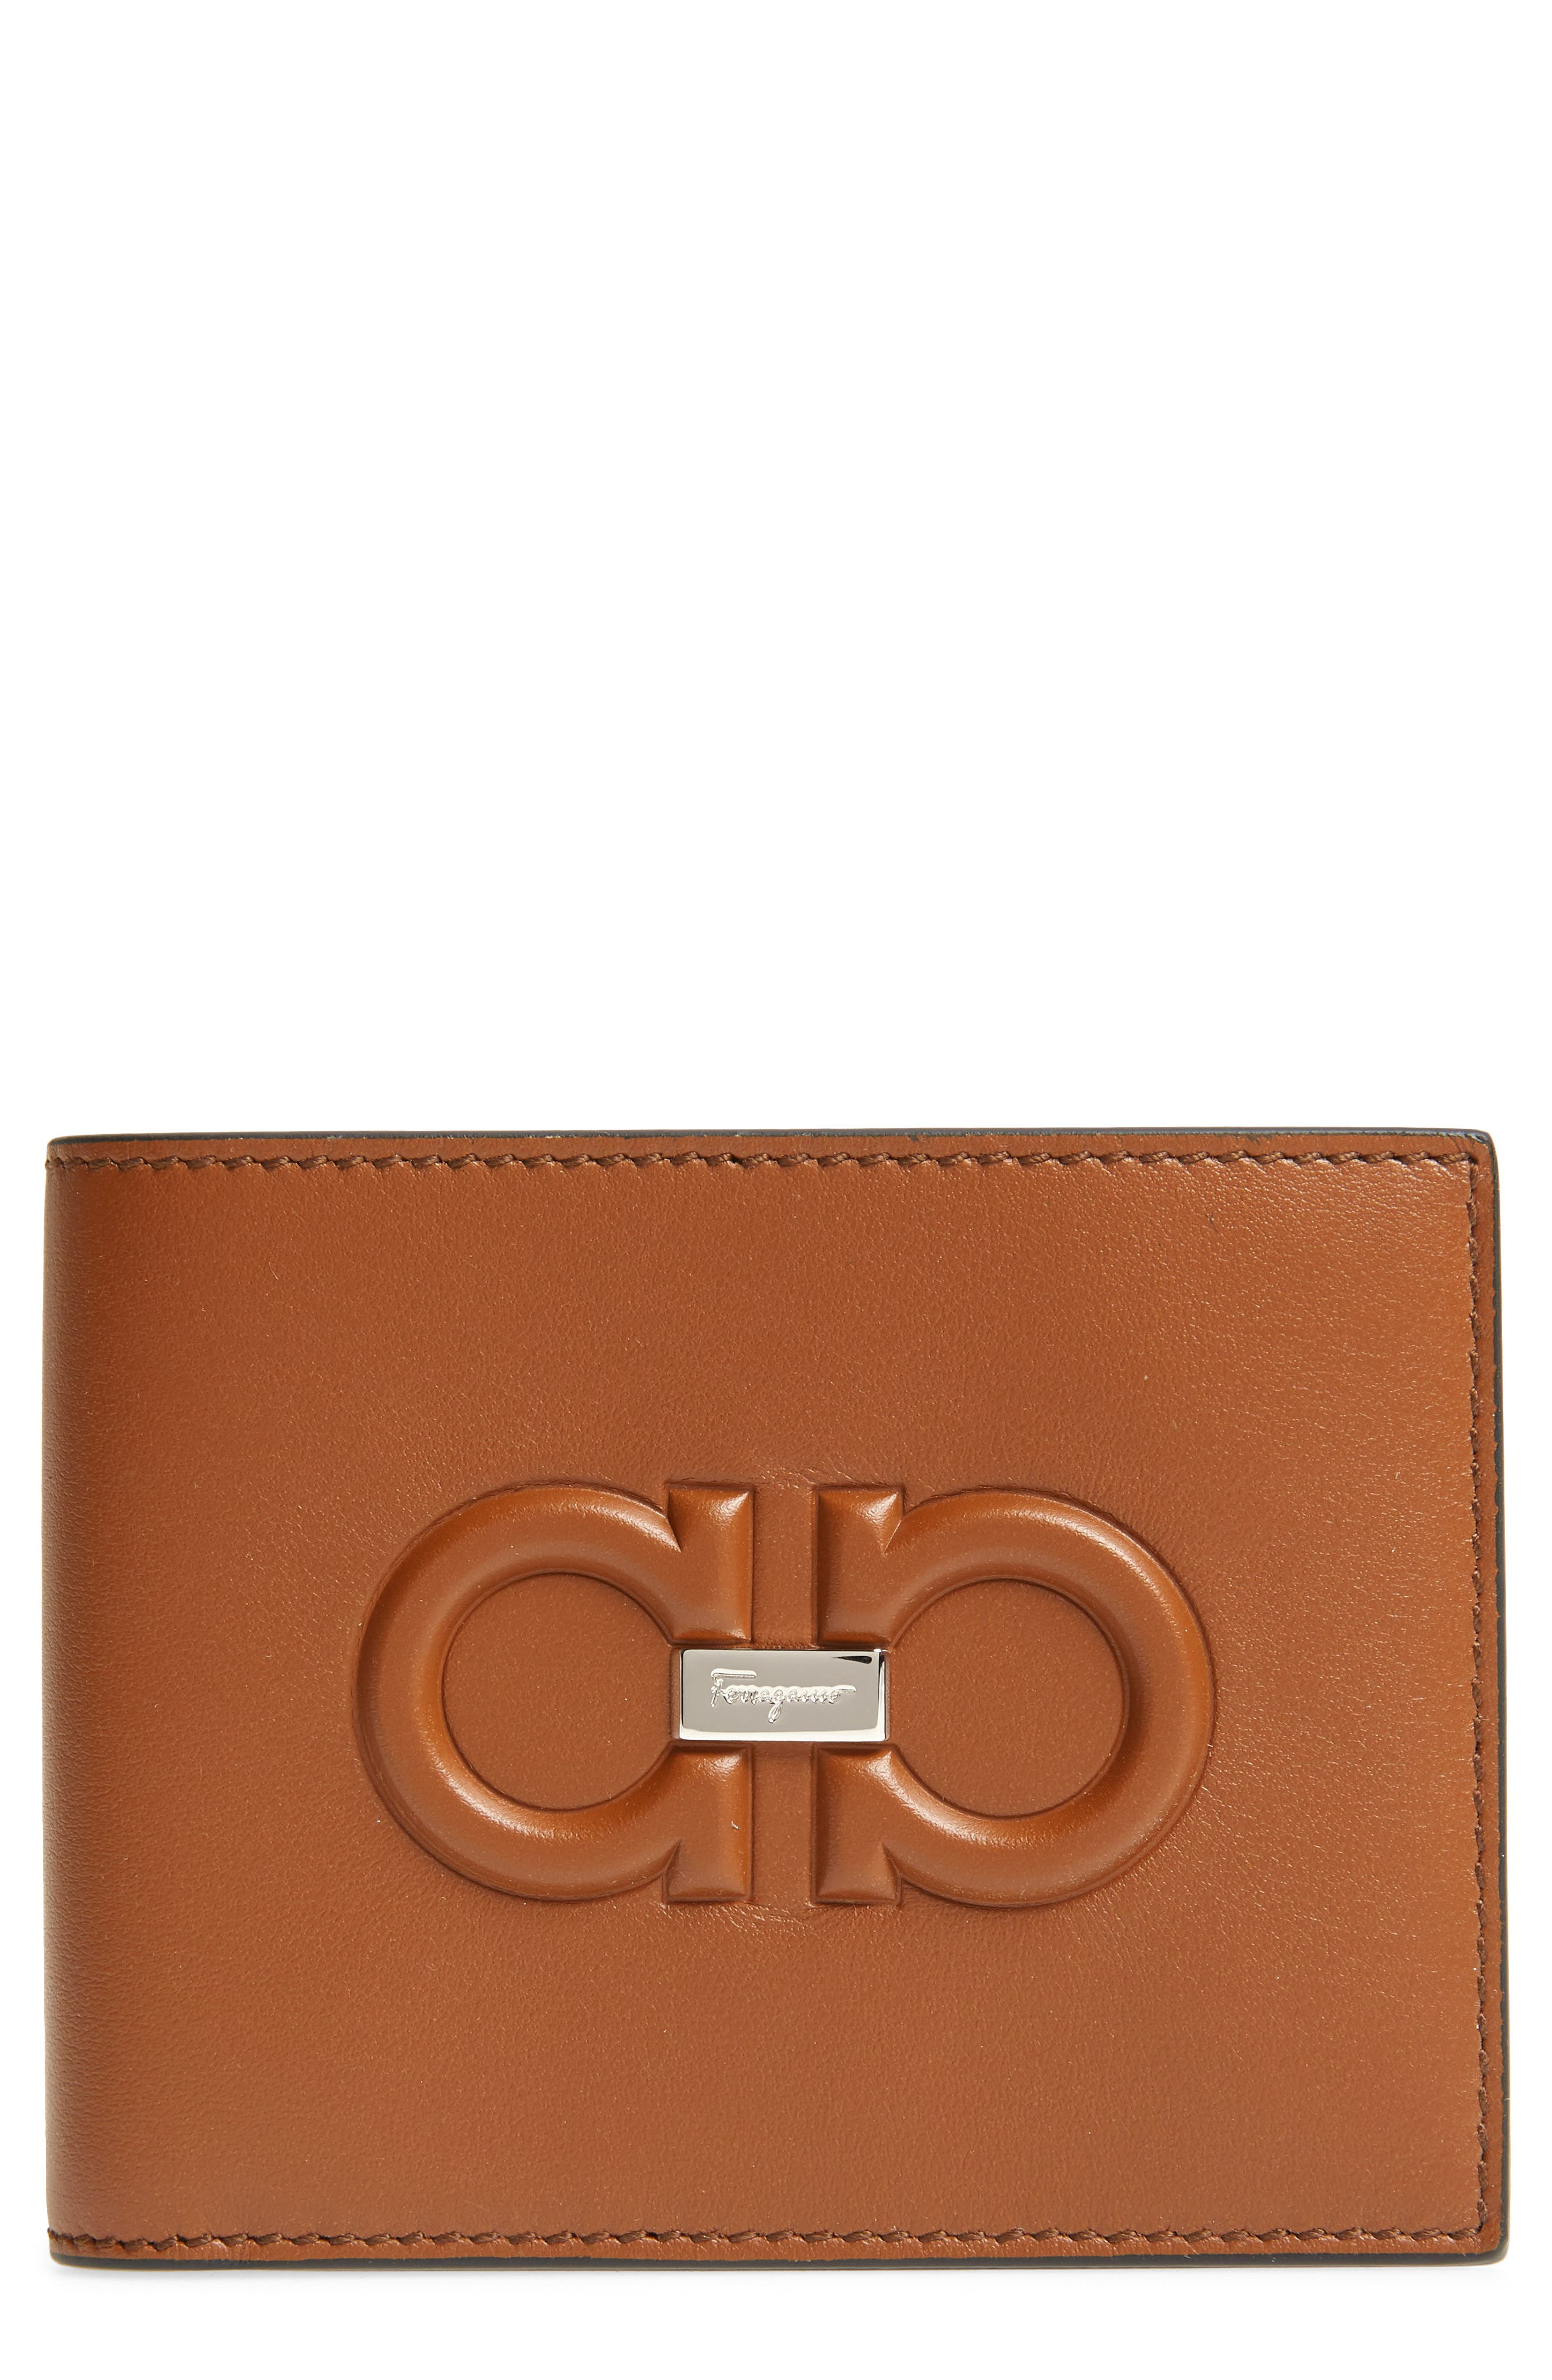 Firenze Logo Leather Wallet by Salvatore Ferragamo